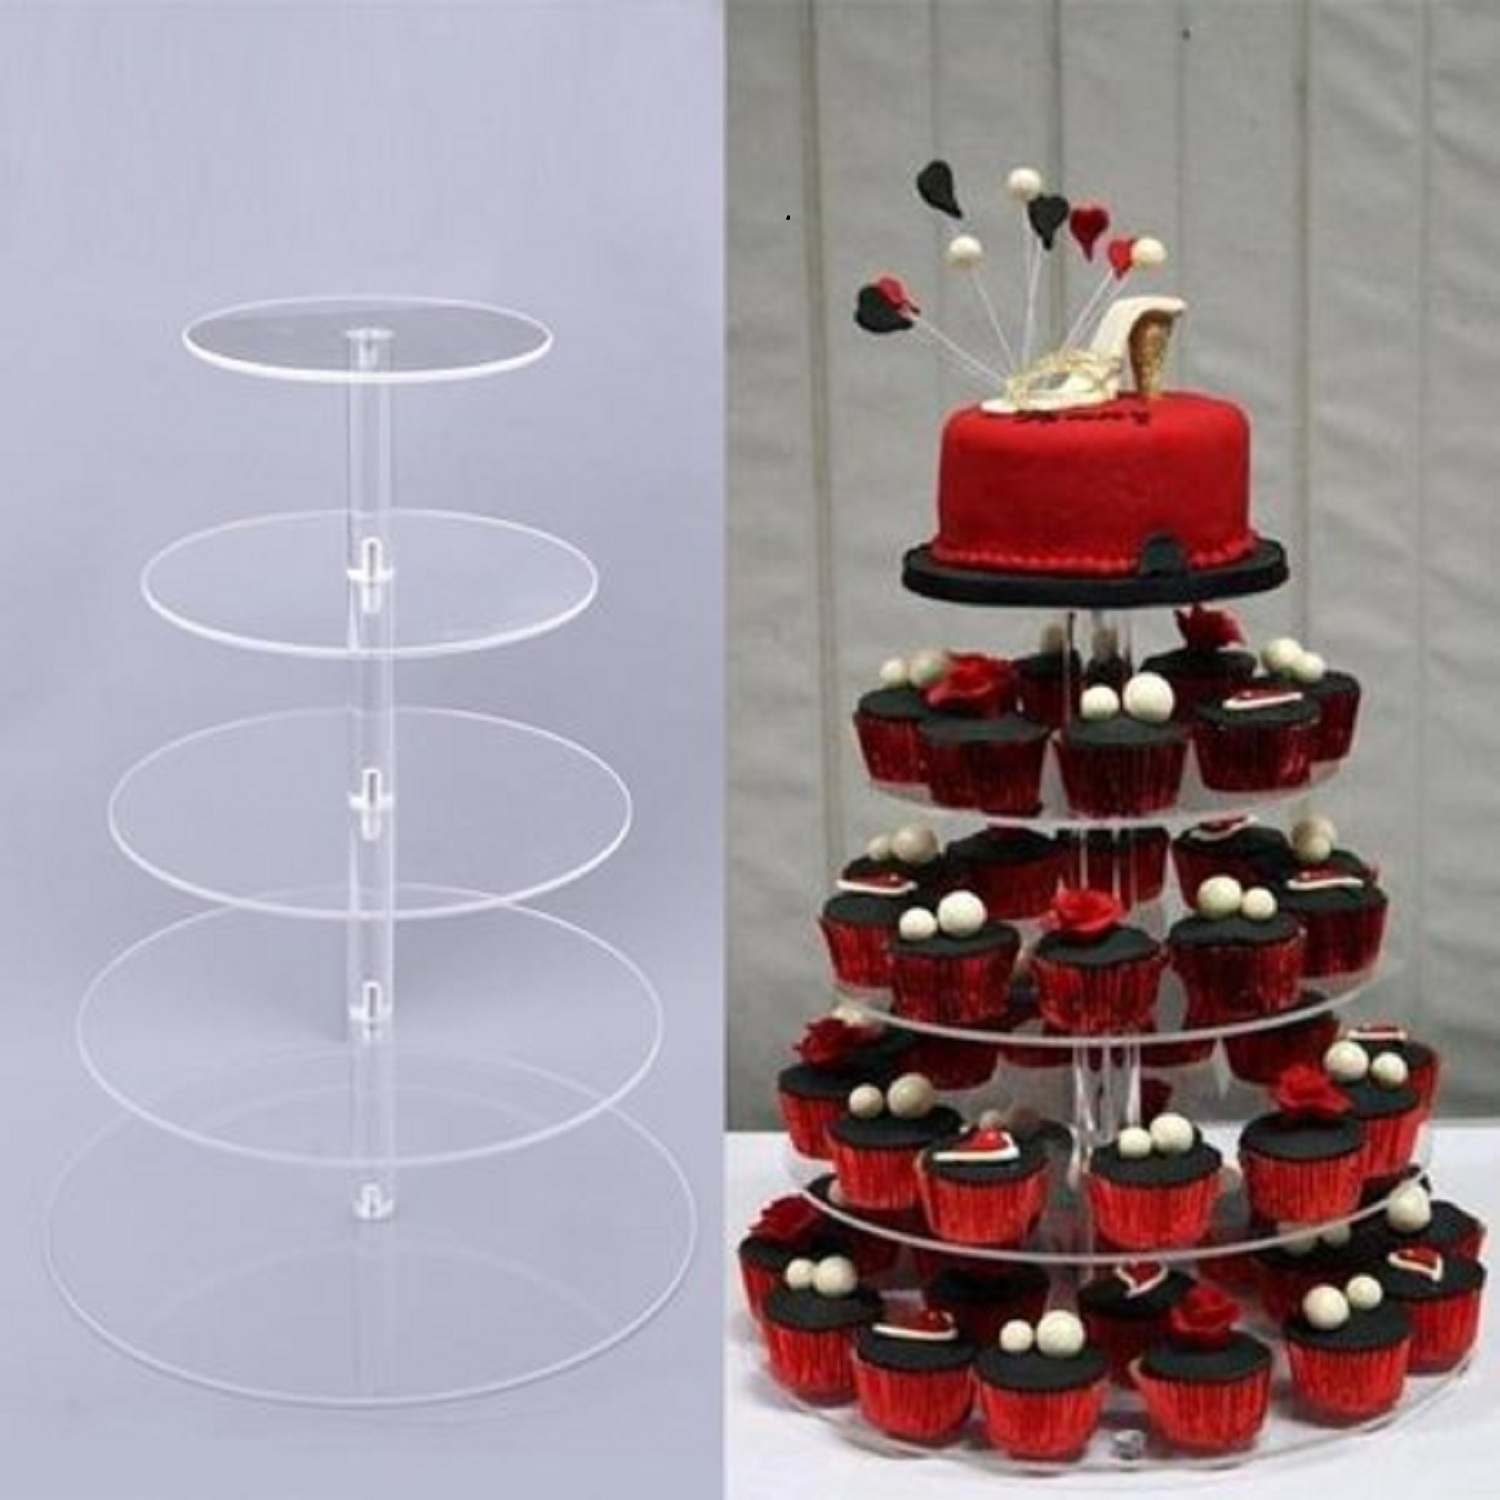 5 Tier Round Crystal Clear Acrylic Cupcake Tower Stand Wedding Display Walmart Com Walmart Com